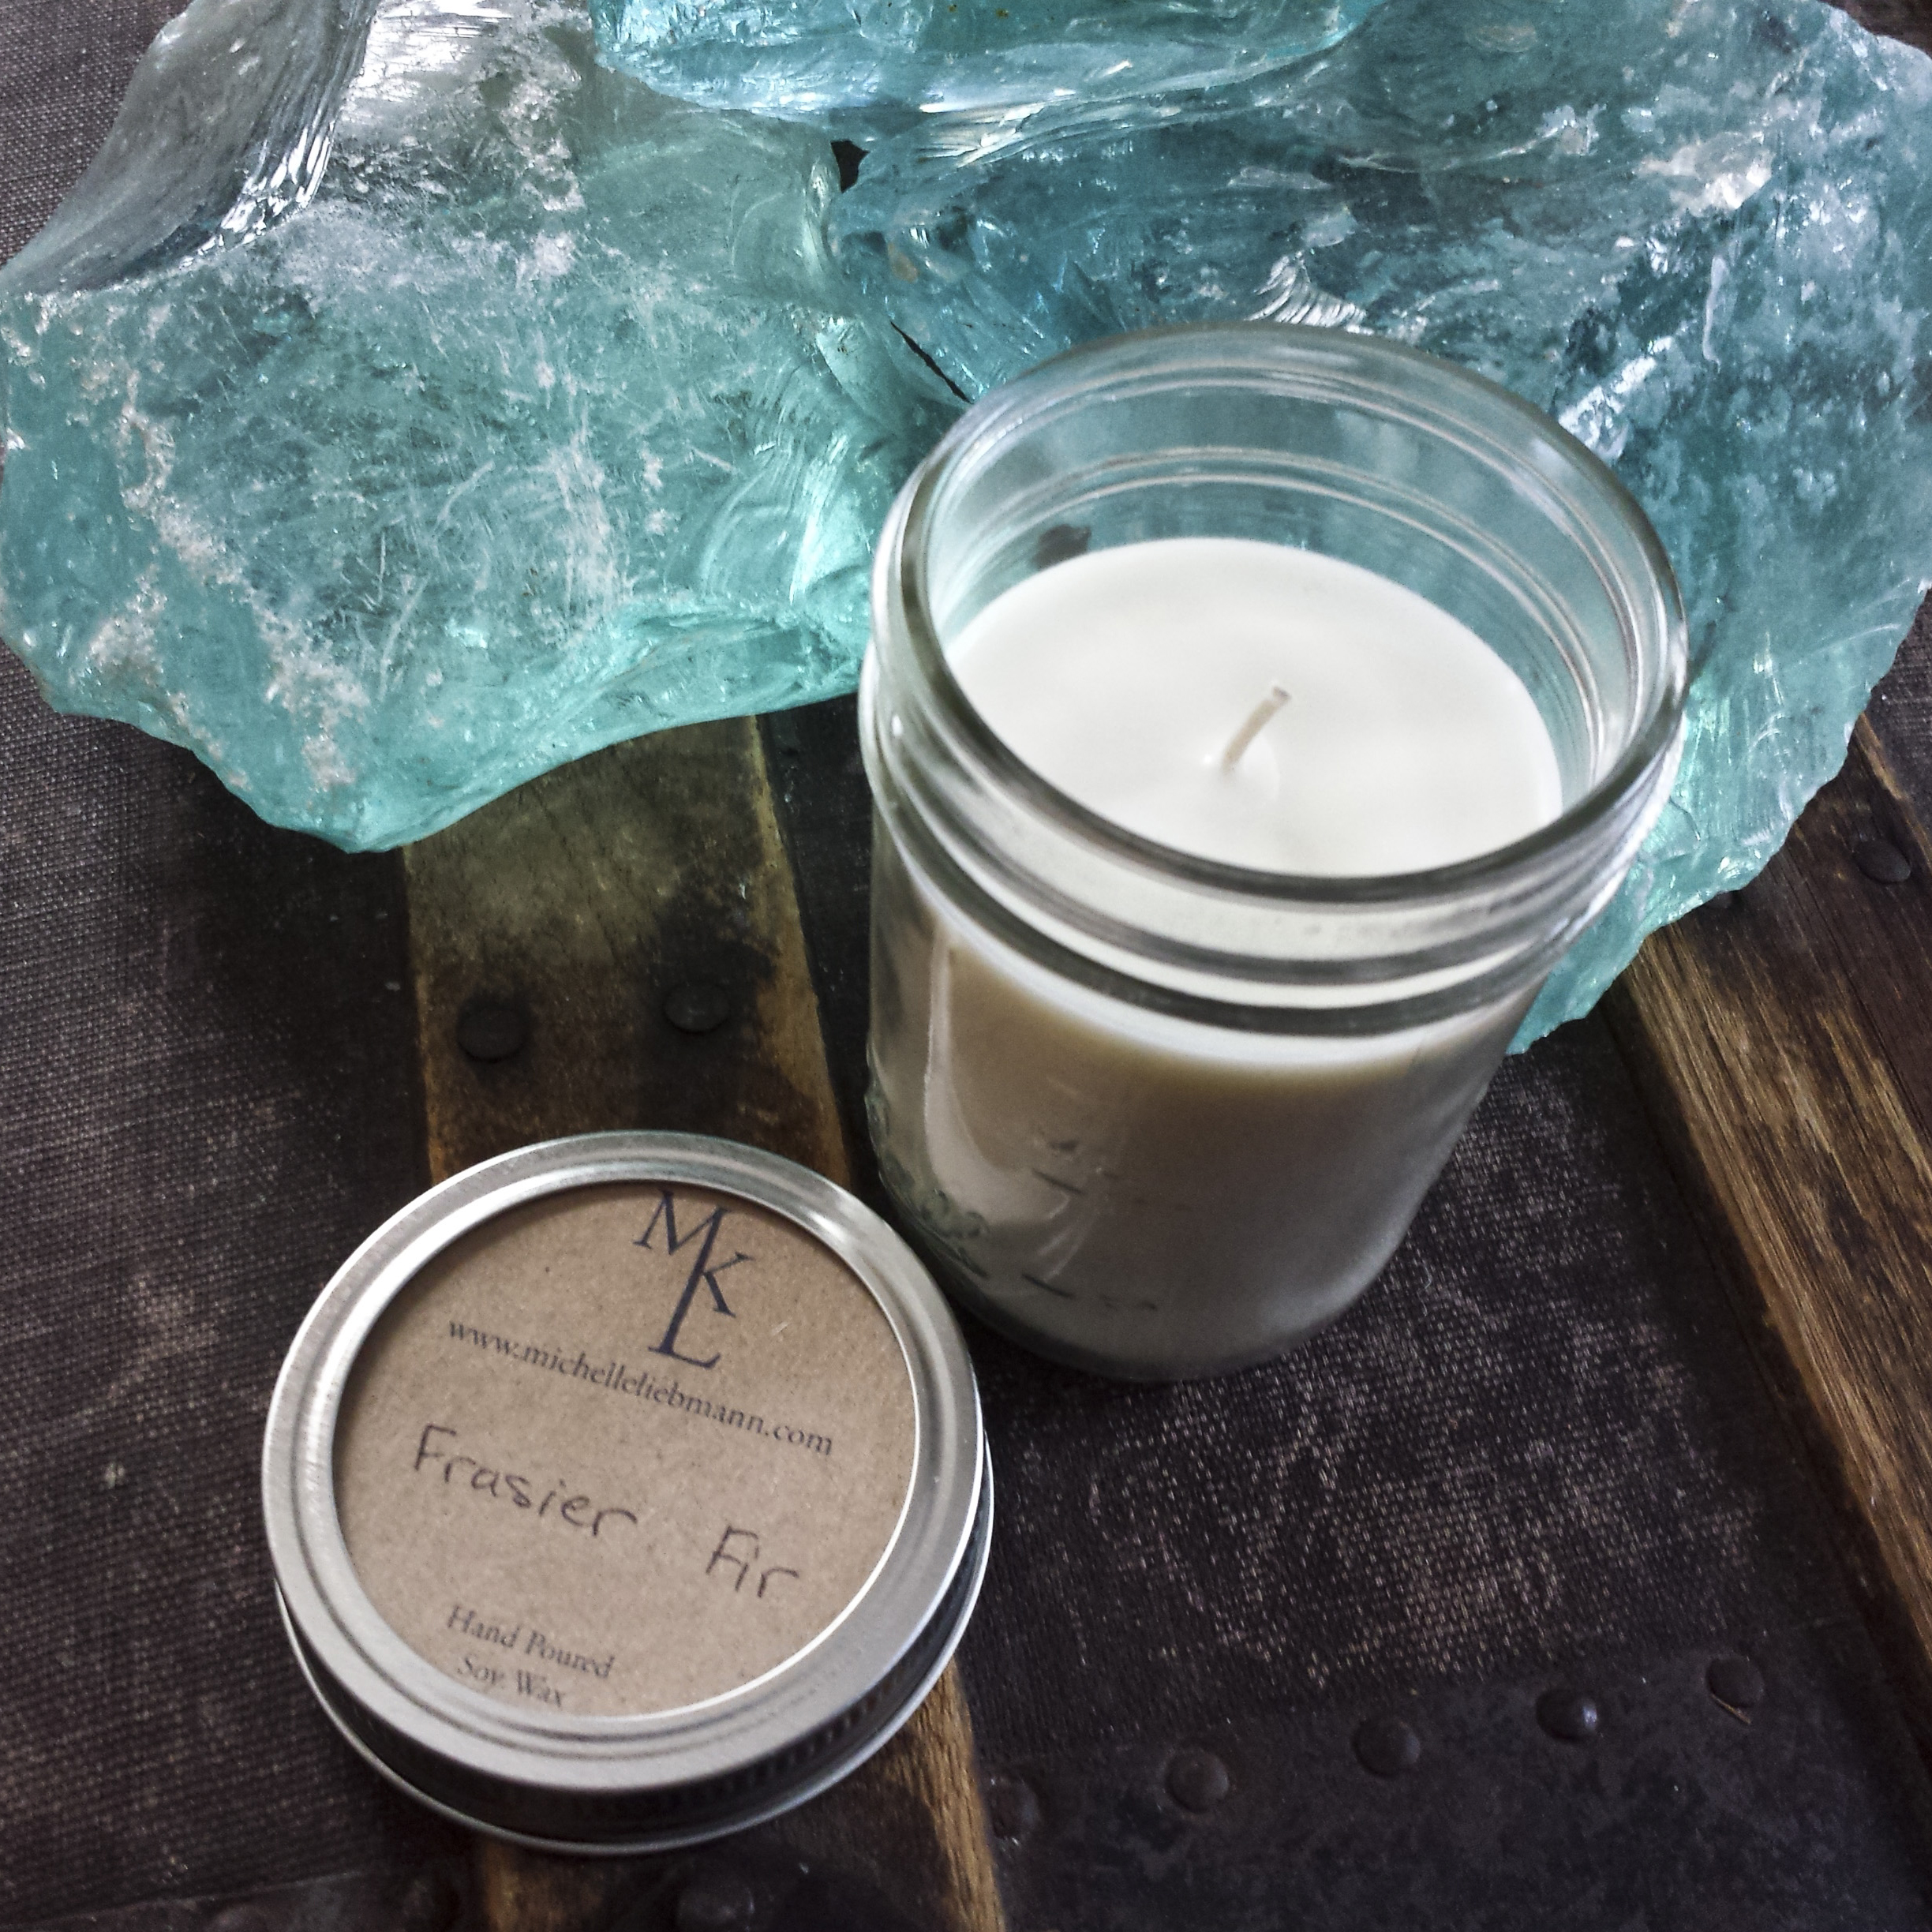 Hand Poured Natural Soy Wax Candle – Frasier Fir – $11